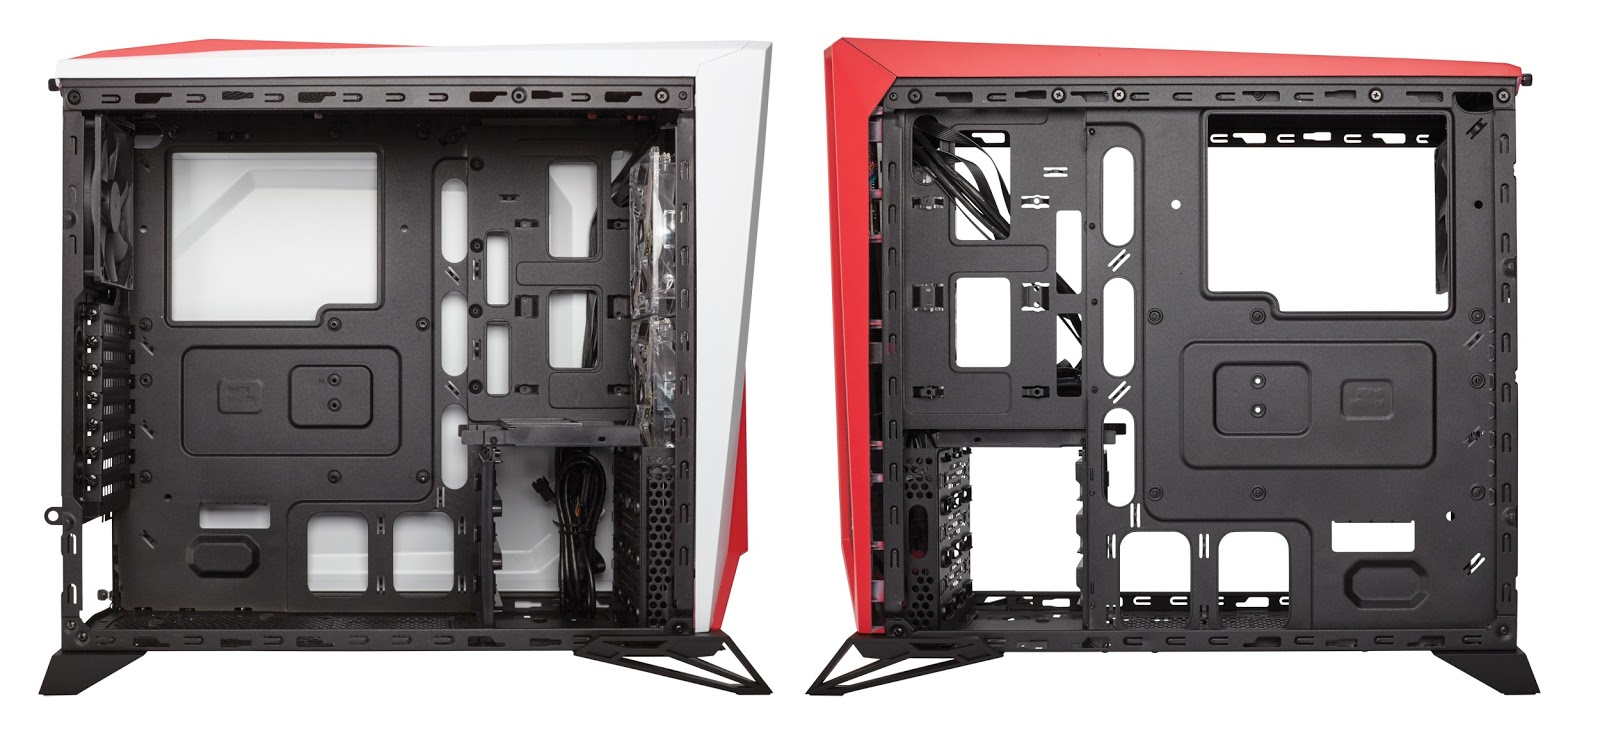 Promo Corsair Carbide Spec M2 Update 2018 Samsung Galaxy S8 Baby Skin Ultra Thin Hard Case Red 121703 Alpha Mid Tower Cabinet Review Computers And Open Up The You